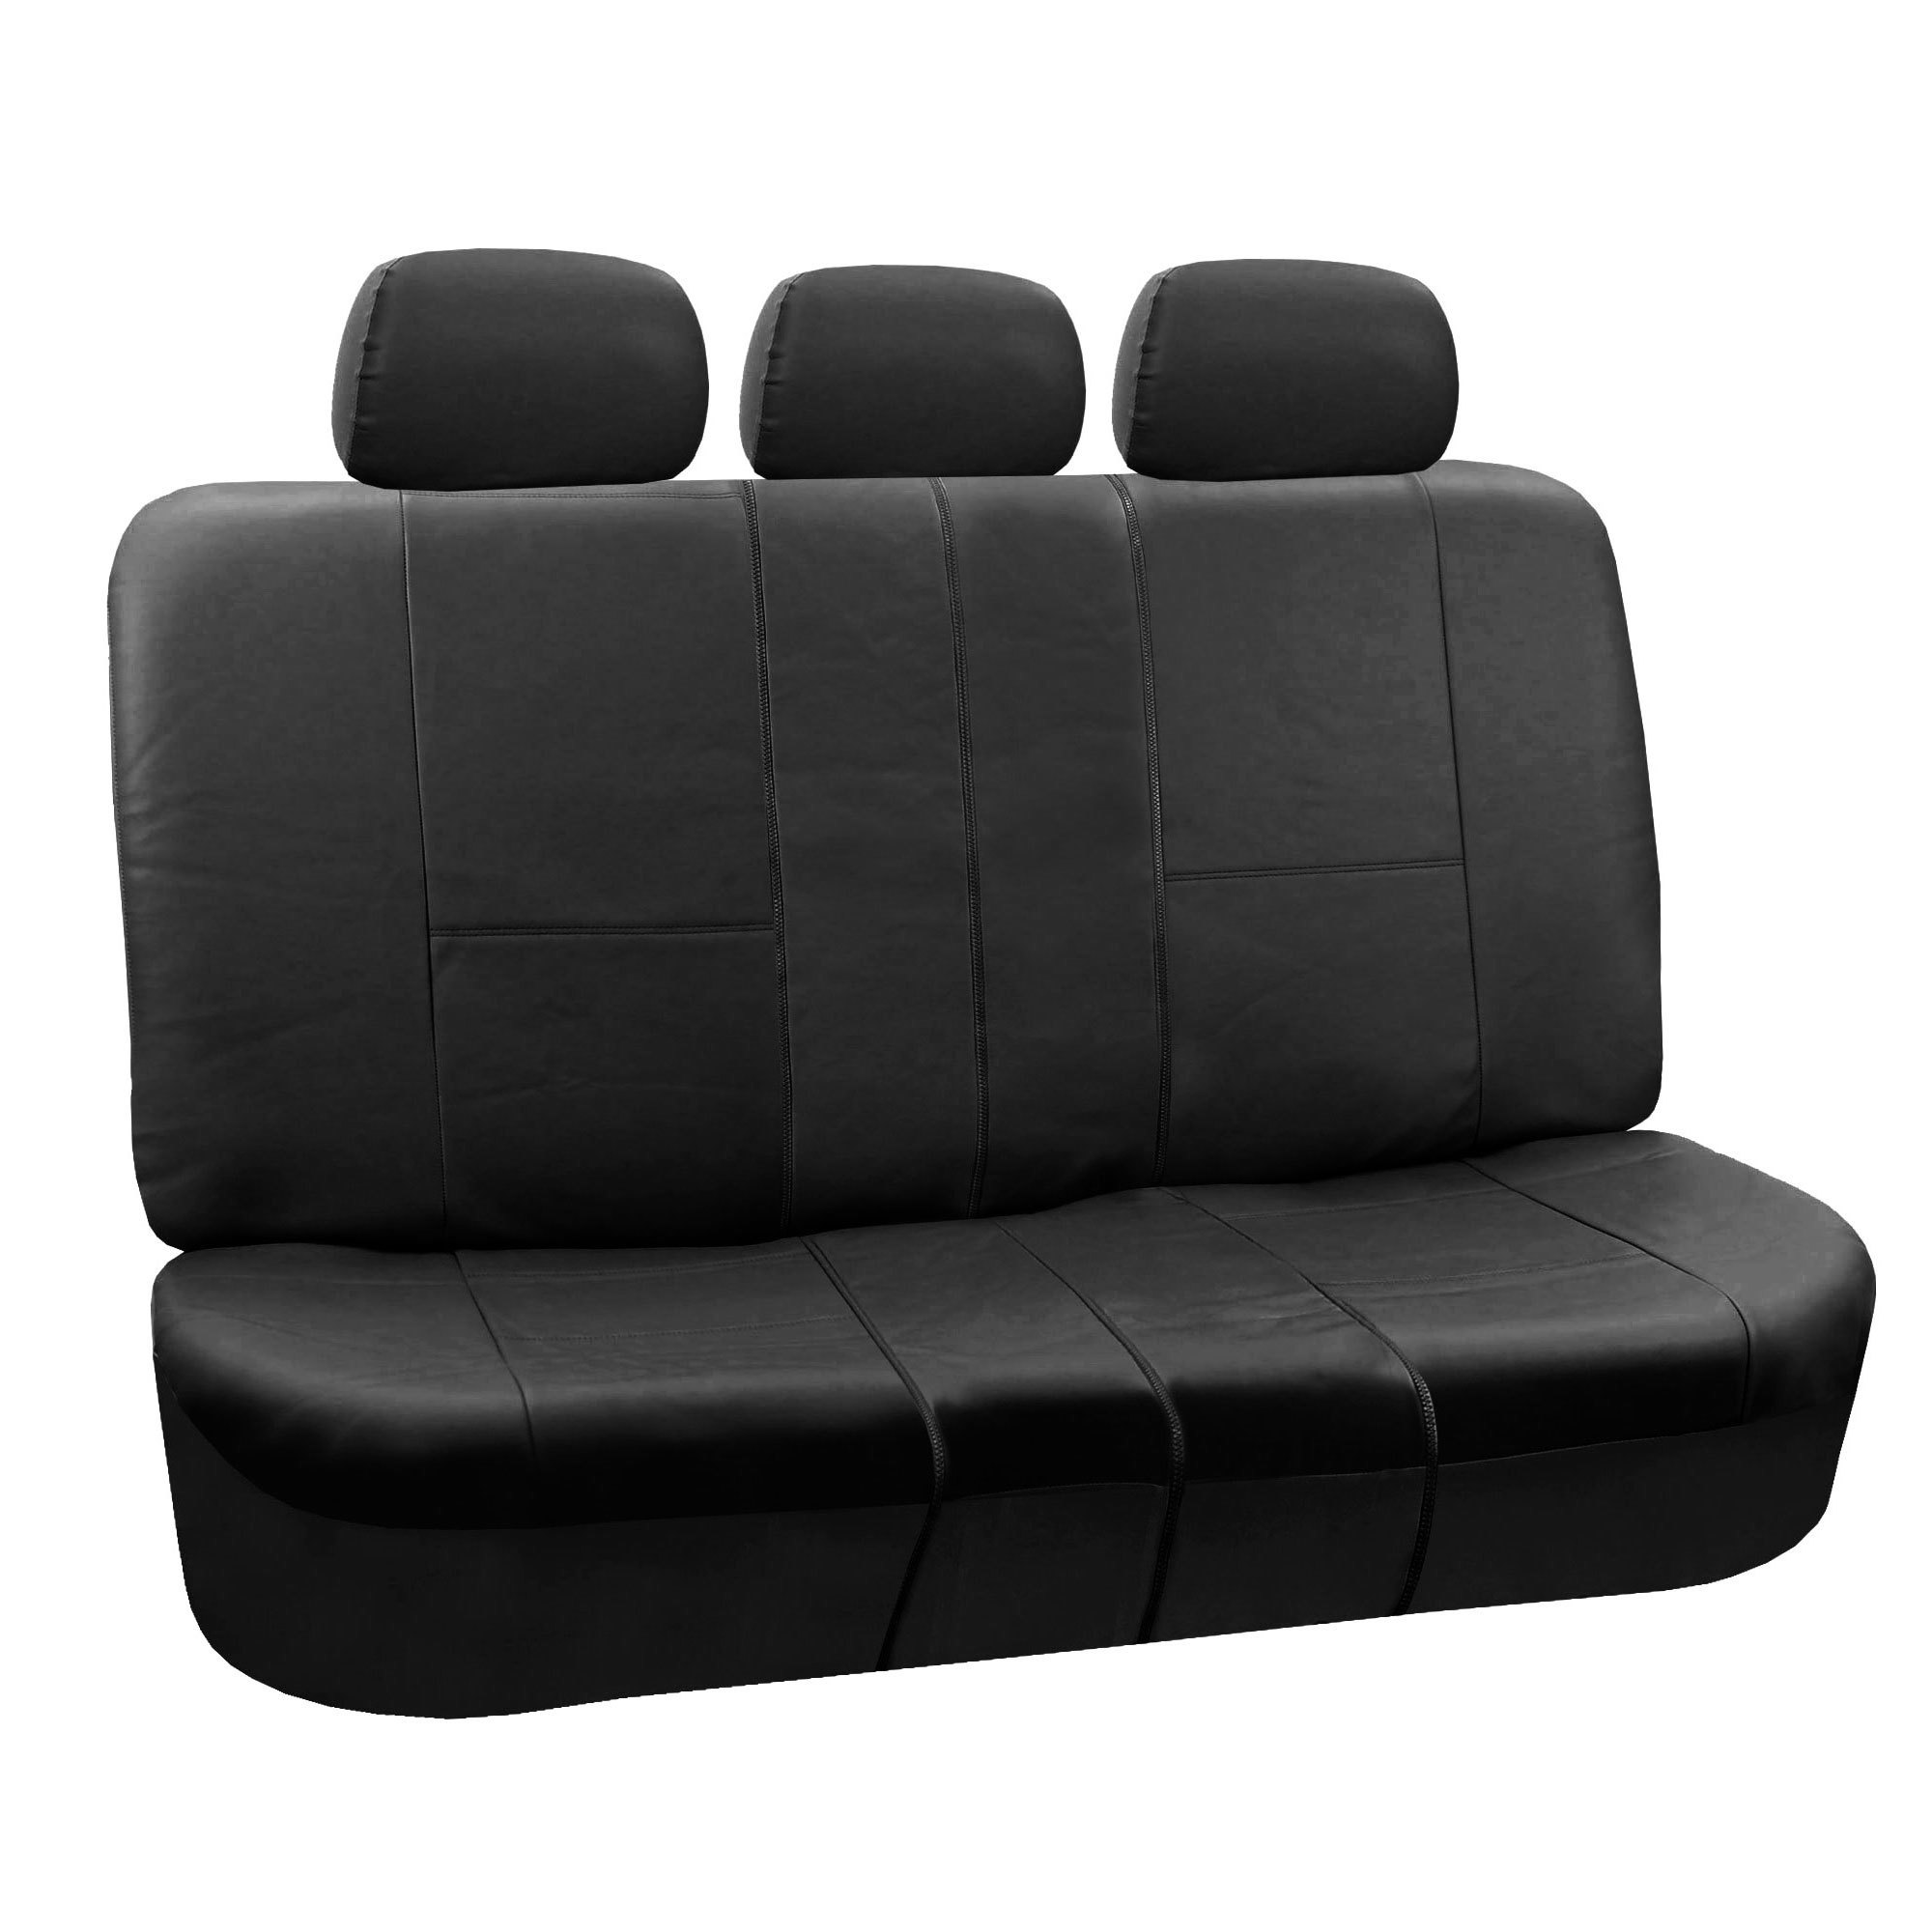 FH Group Black Faux Leather Split Bench Automotive Seat C...